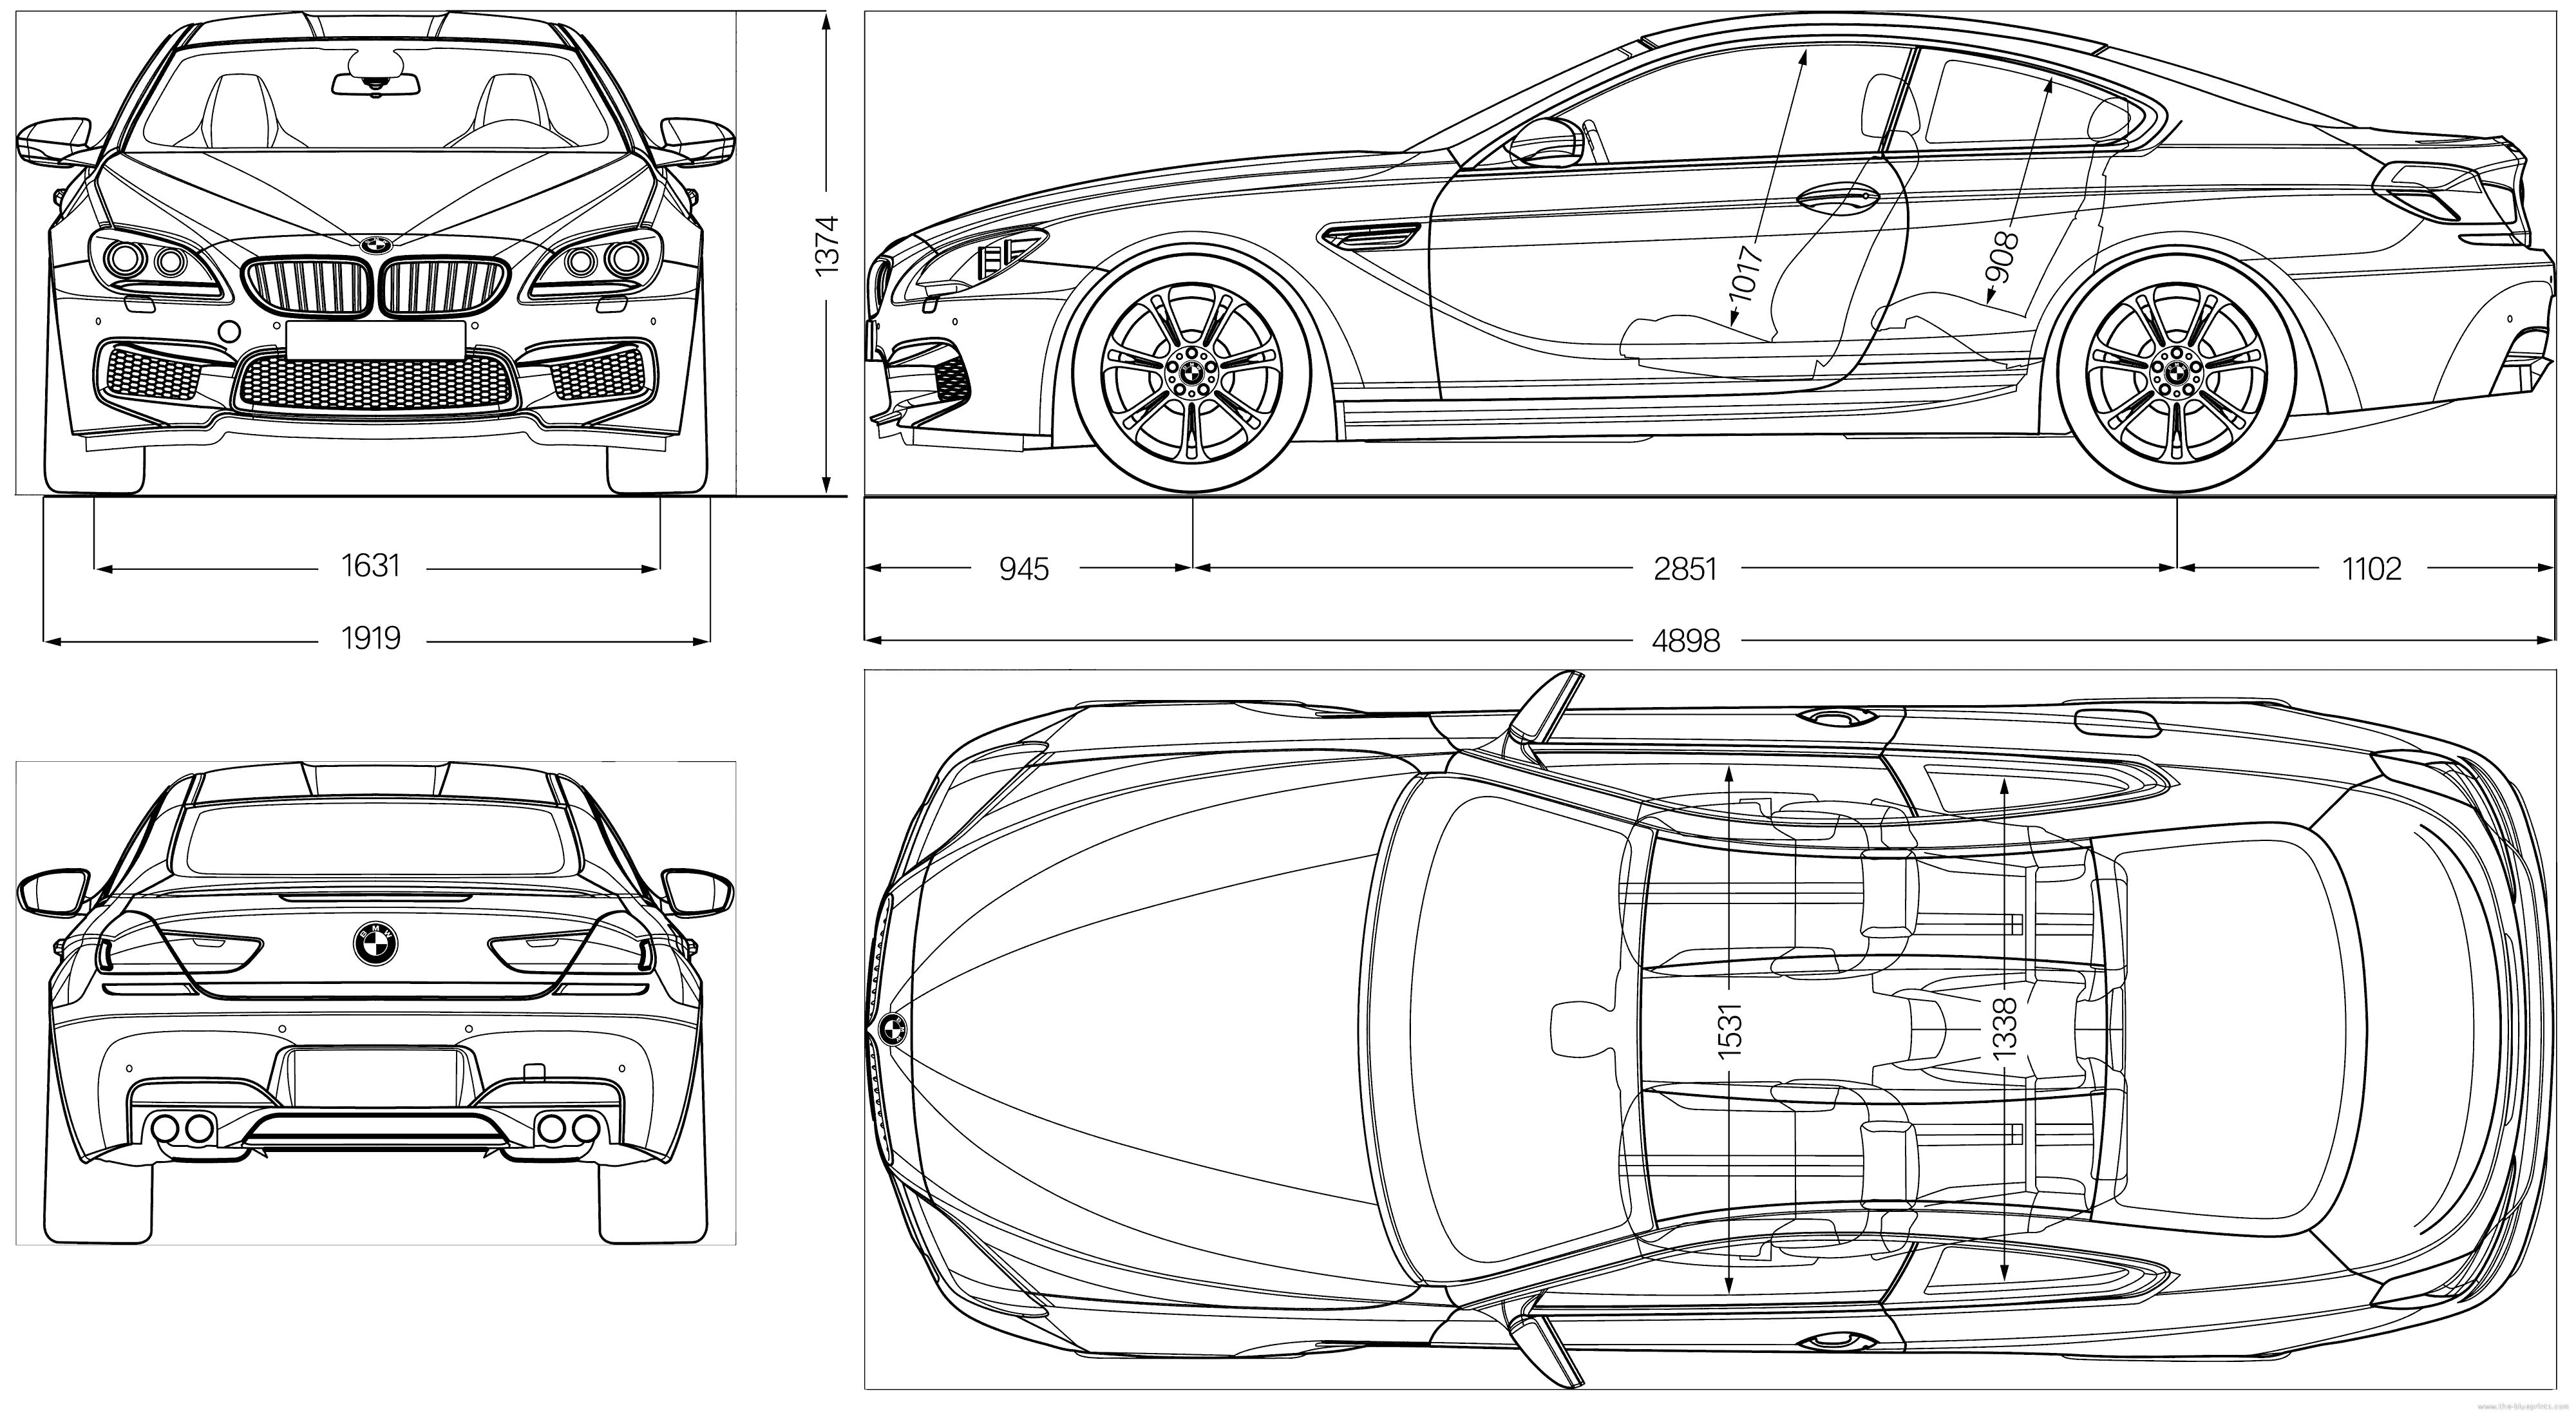 Blueprints cars bmw bmw m6 coupe f12 2012 bmw m6 coupe f12 2012 malvernweather Image collections